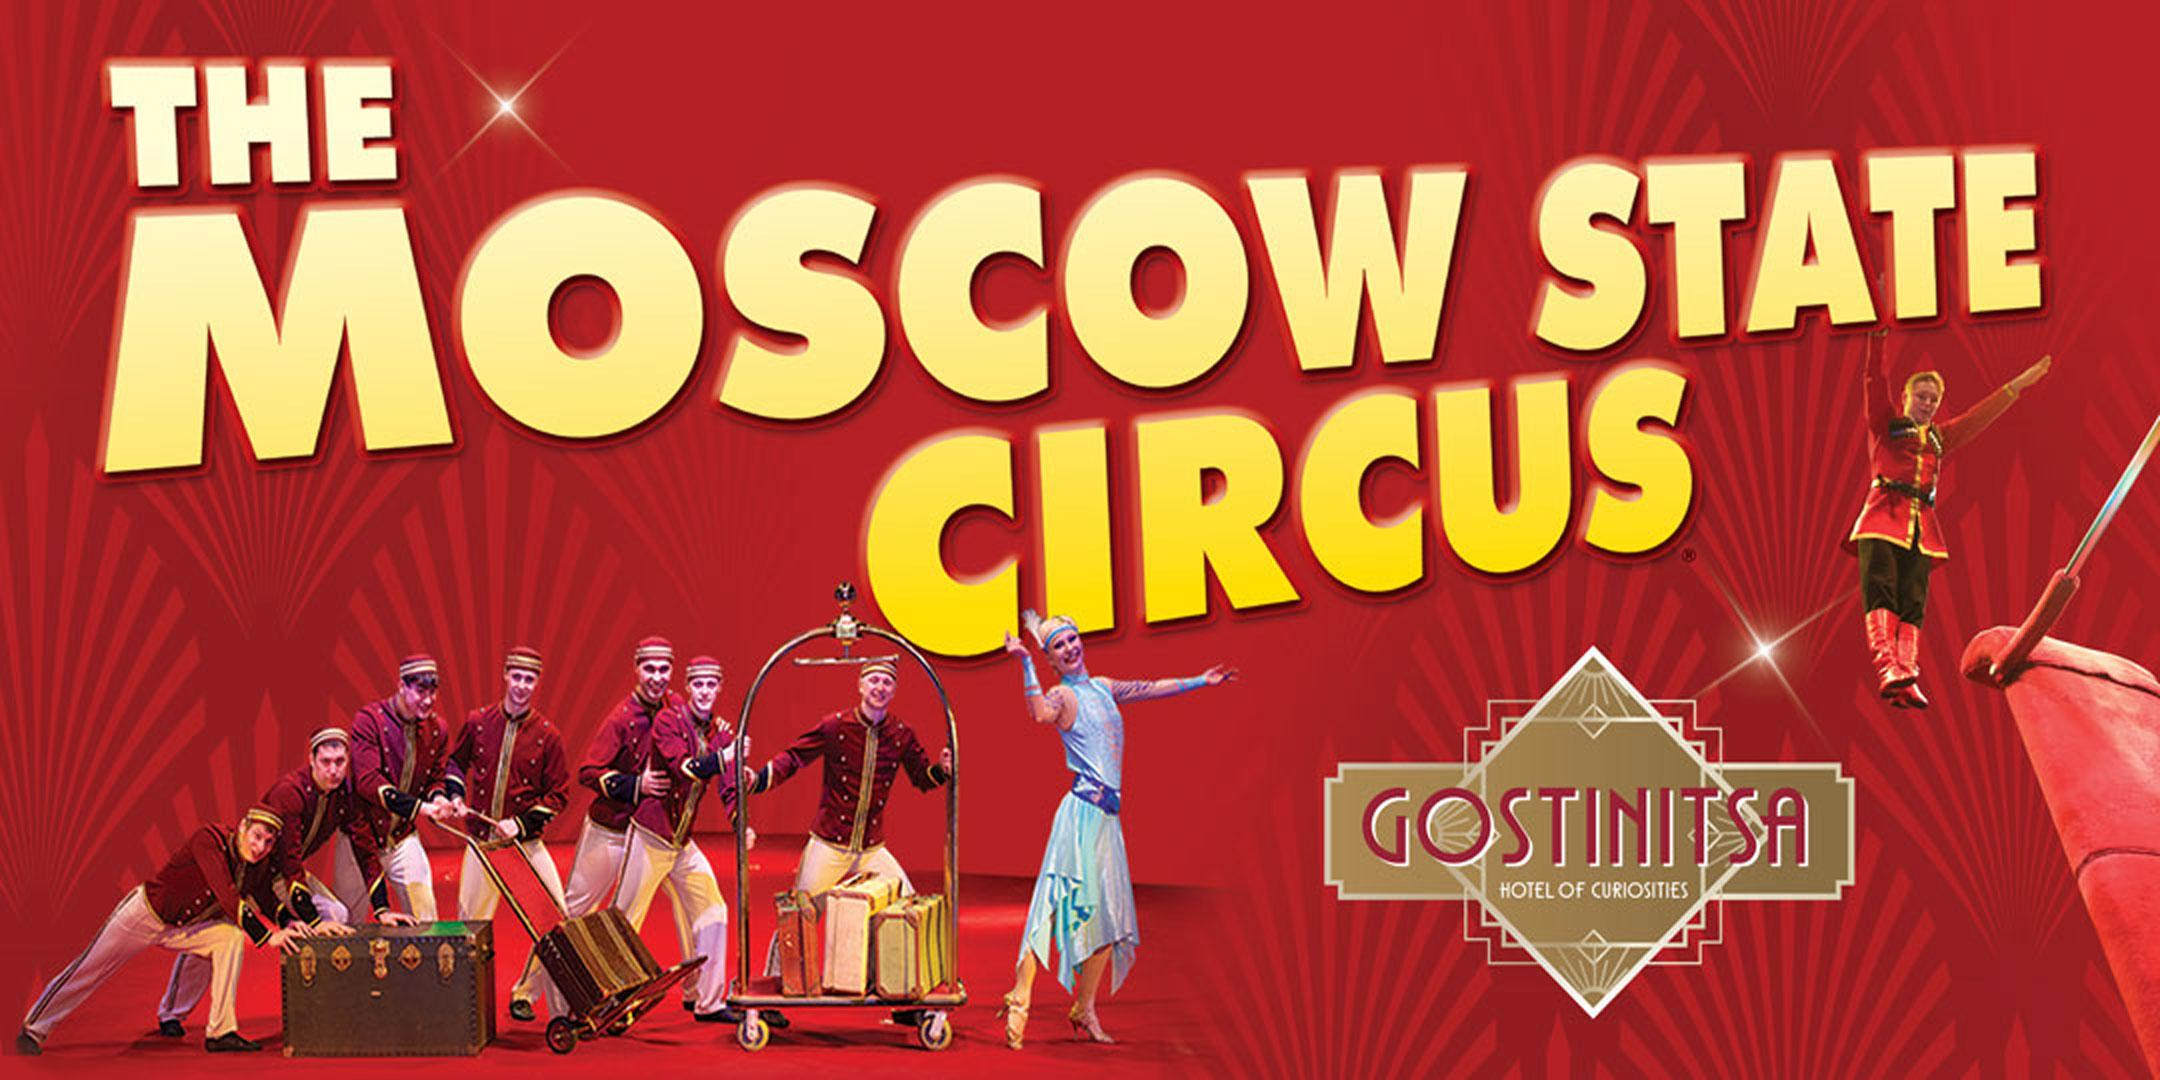 Moscow State Circus Presents GOSTINISTA - She